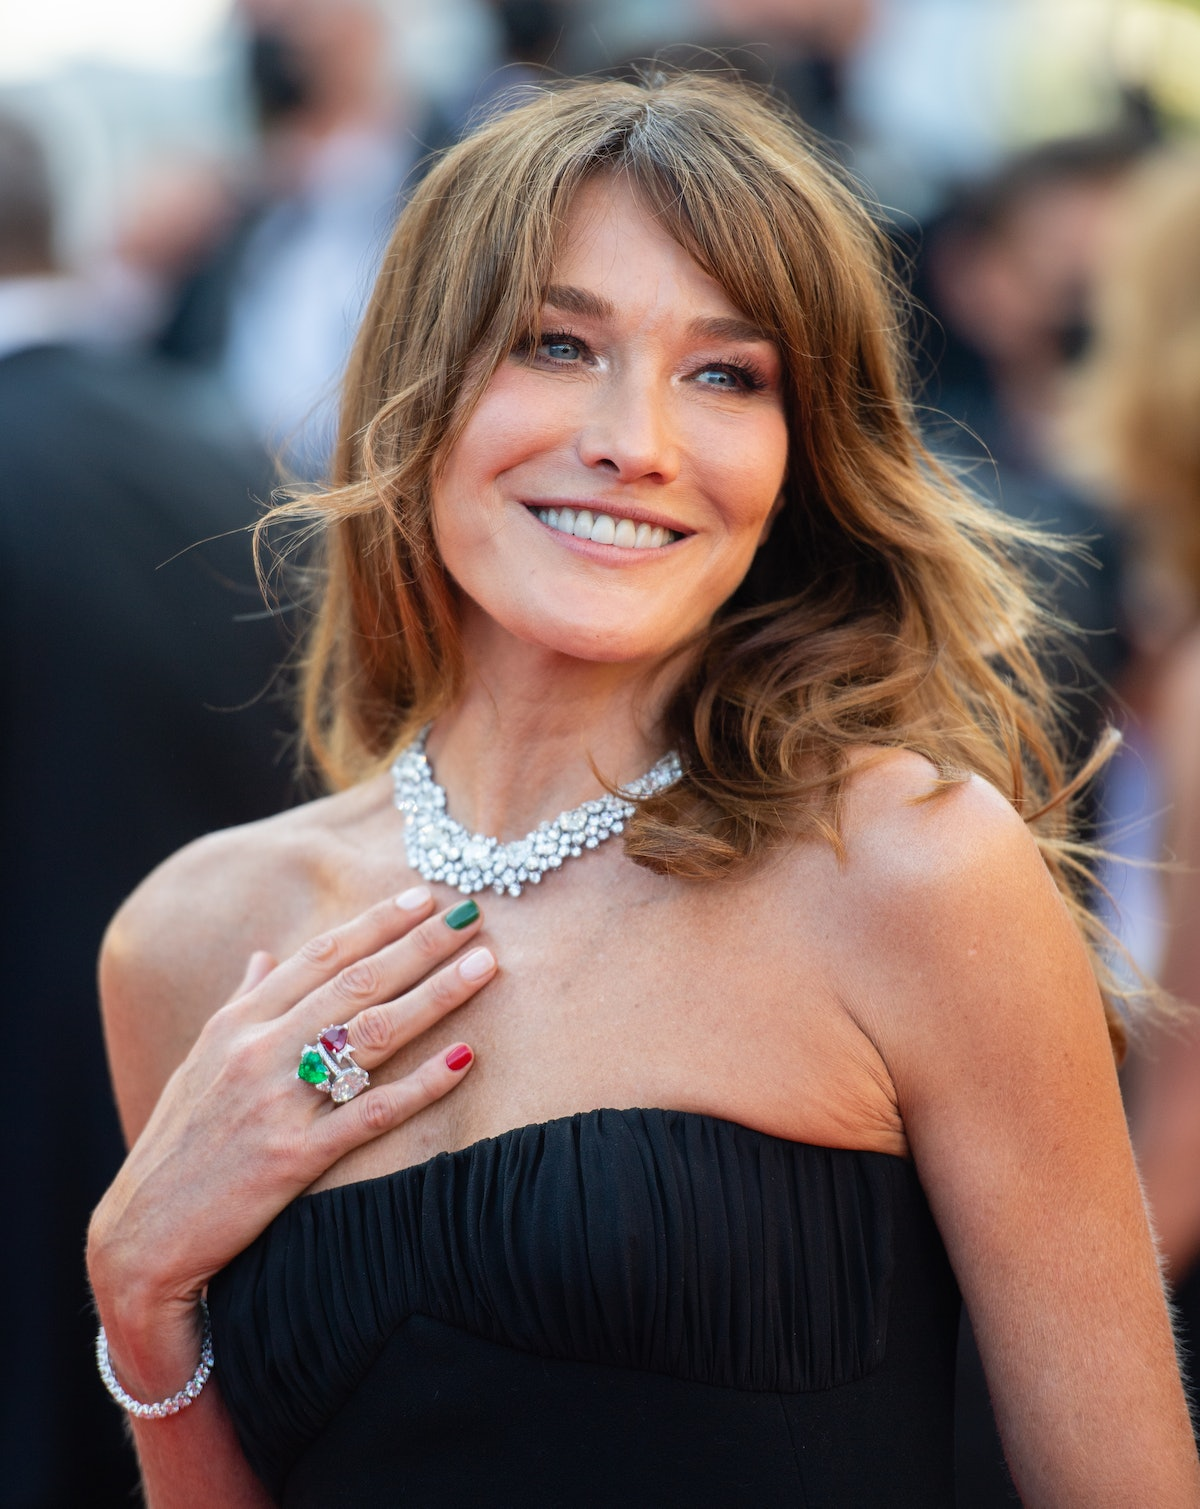 """CANNES, FRANCE - JULY 10: Carla Bruni attends the """"De Son Vivient (Peaceful)"""" screening during the 74th annual Cannes Film Festival on July 10, 2021 in Cannes, France. (Photo by Samir Hussein/WireImage)"""